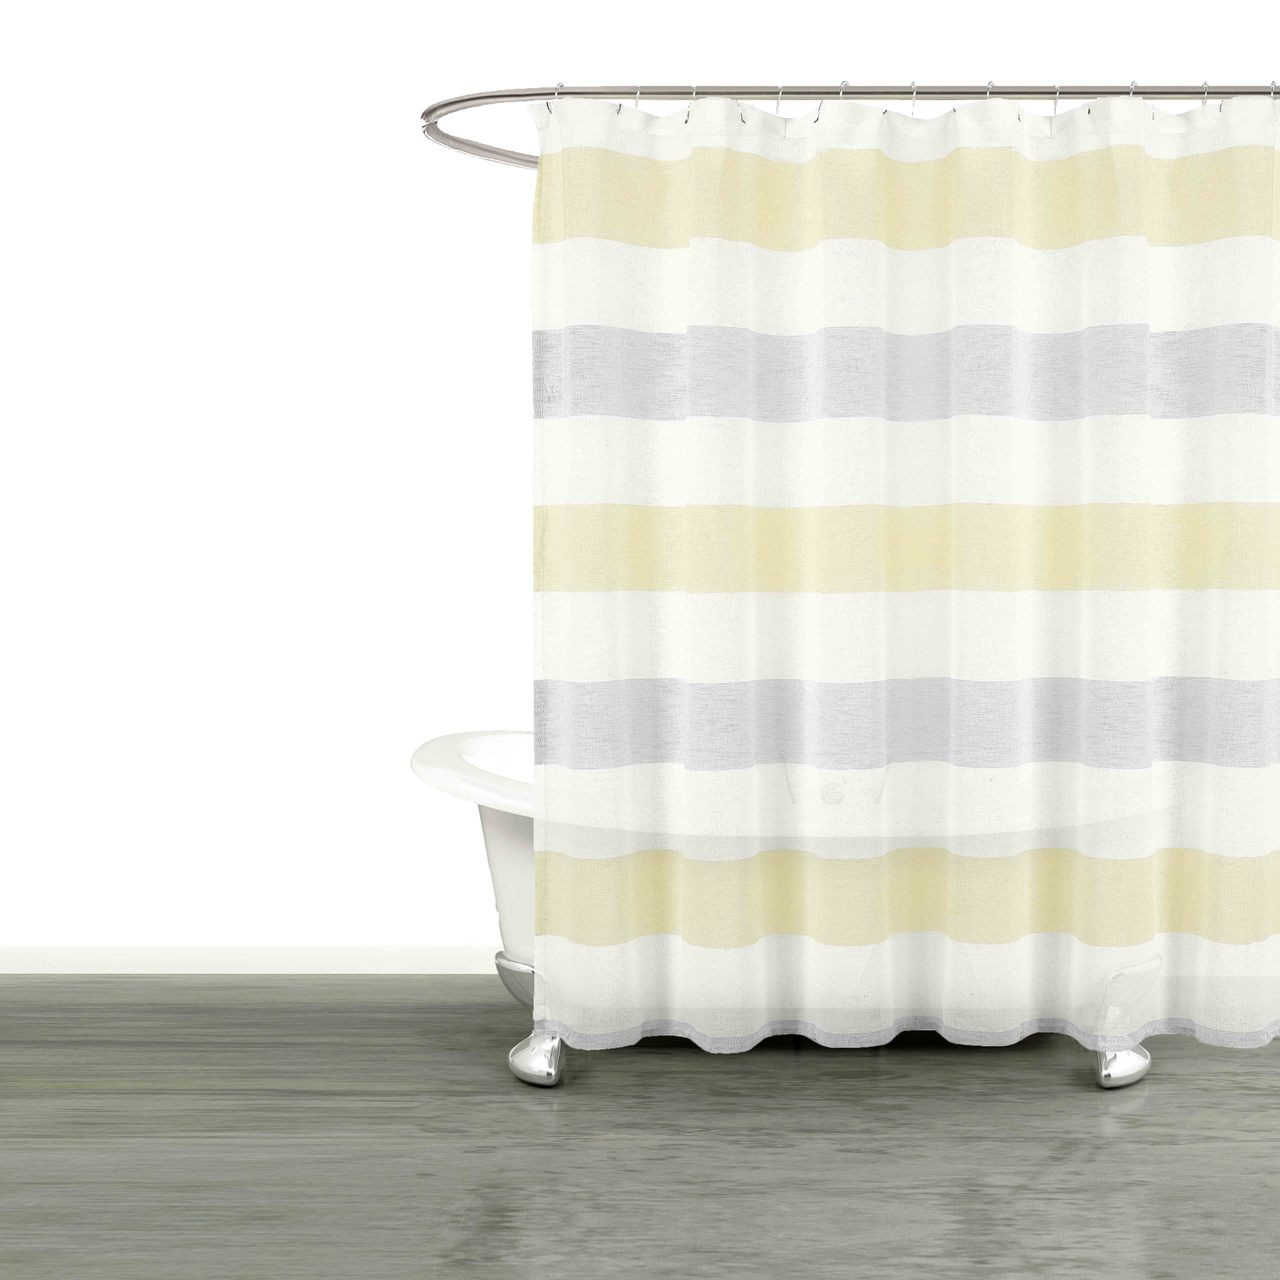 Bathroom And More Collection Sheer Fabric Shower Curtain White Yellow Gray Cabana Stripe Design Shower Curtain 78 Long